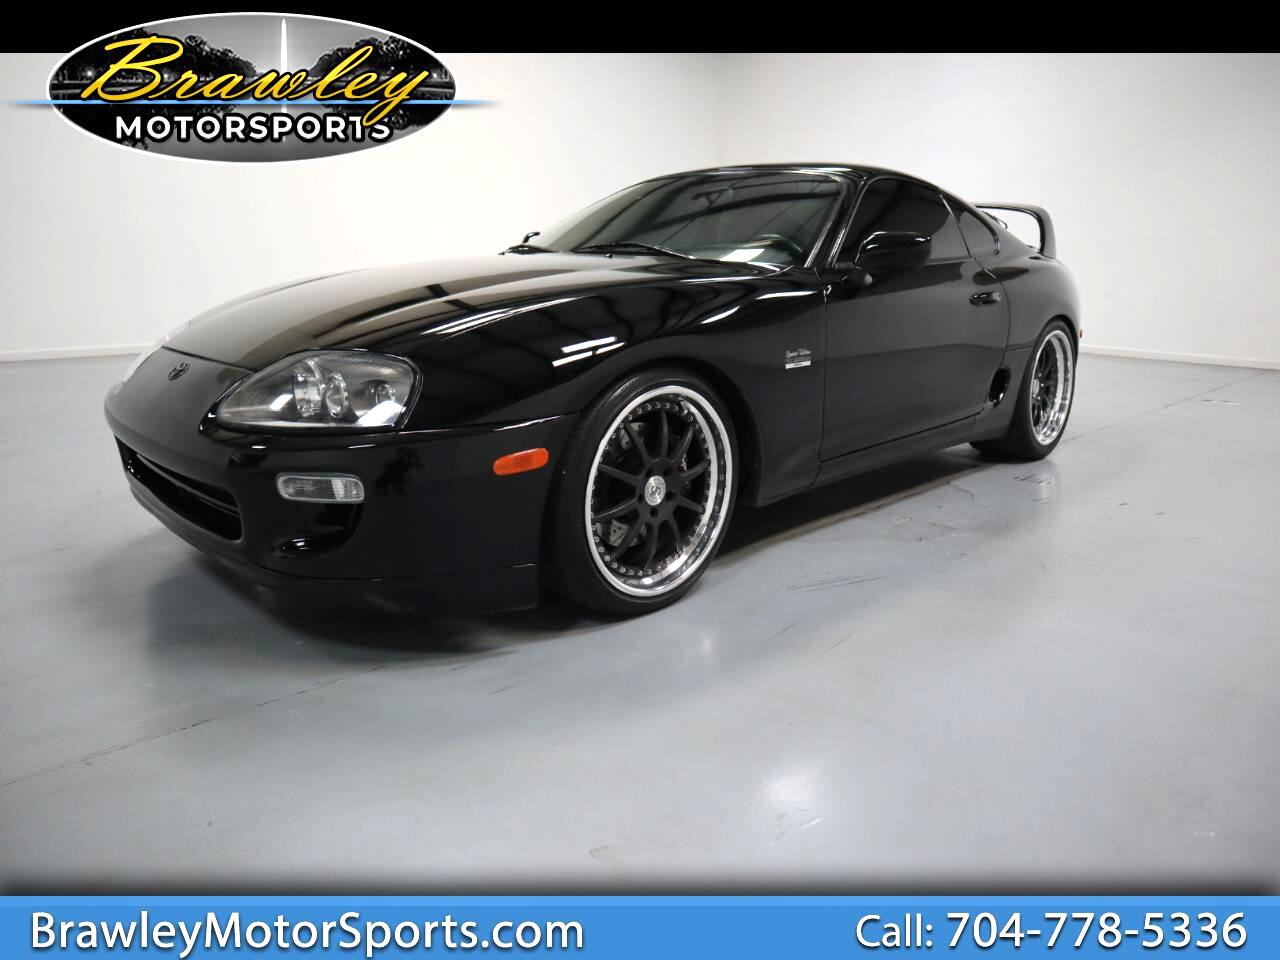 Toyota Supra Limited Edition Turbo 1997